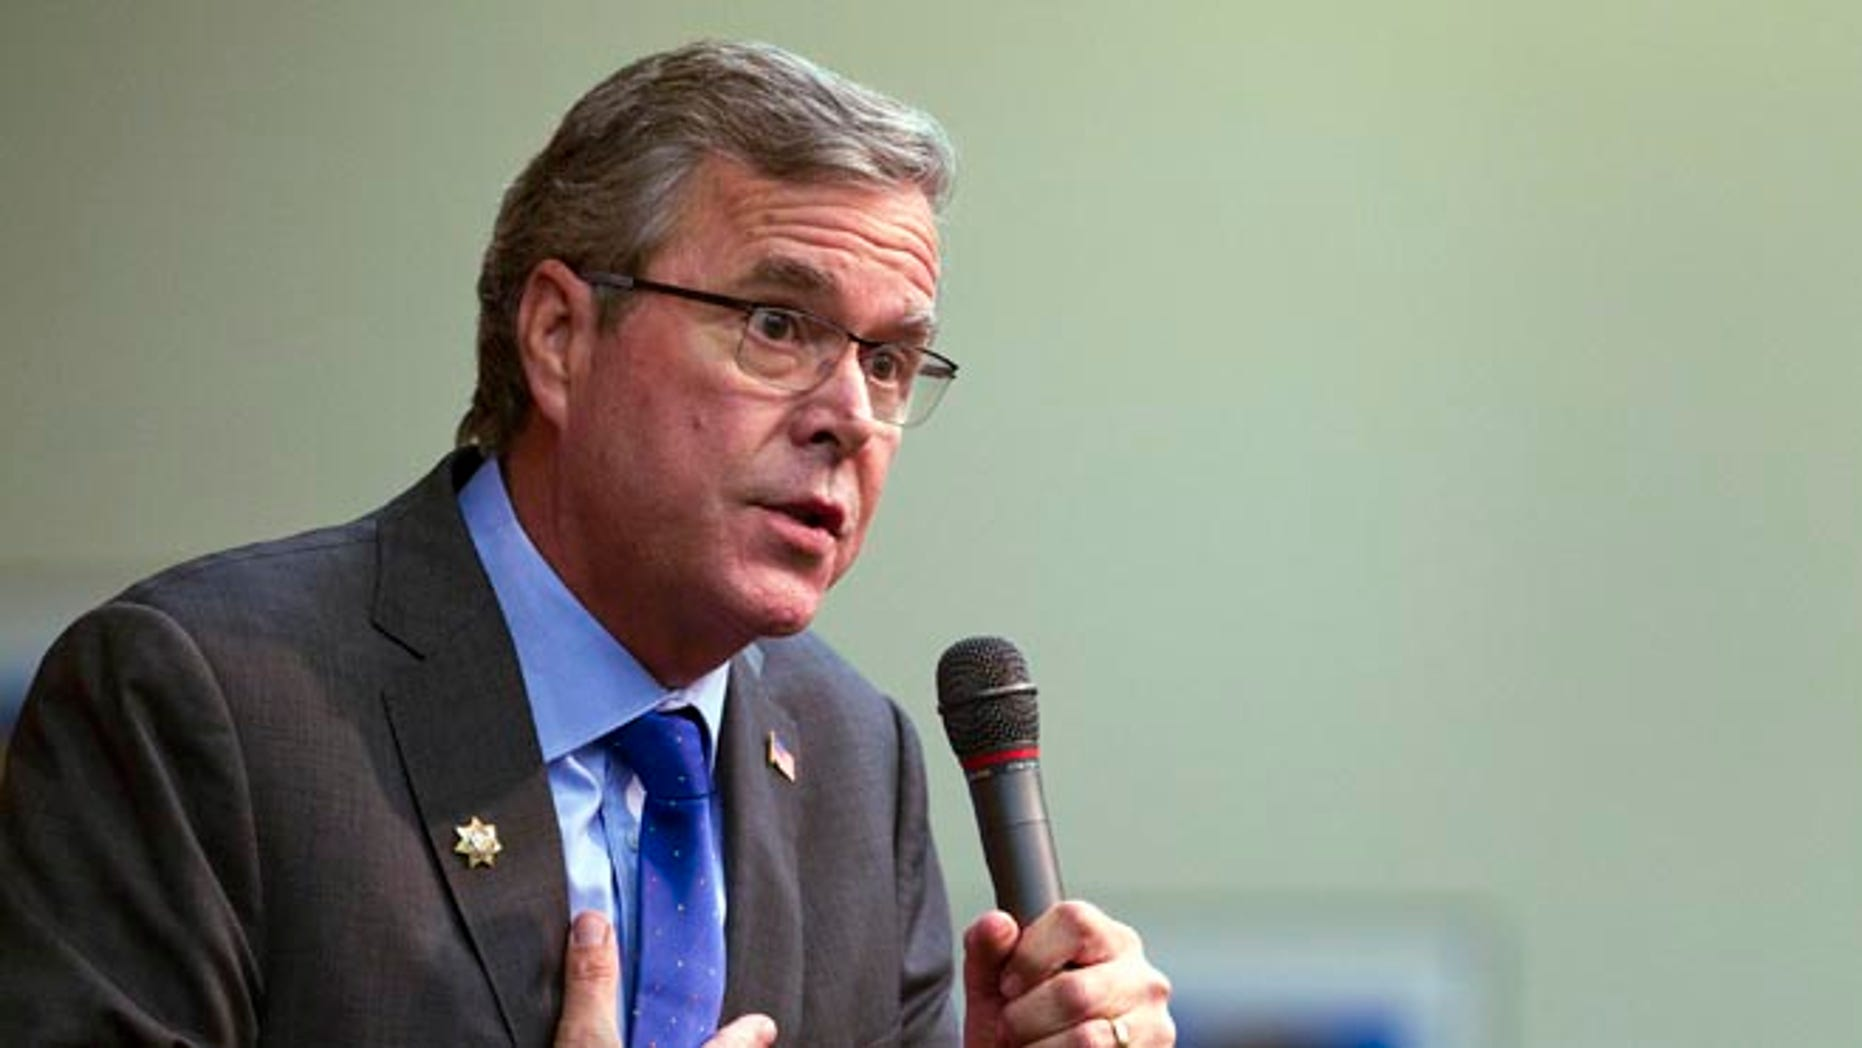 Former Florida Gov. Jeb Bush speaks during a question and answer session at the Mountain Shadows Community Center in Las Vegas Monday, March 2, 2015. Bush distanced himself from his family on Monday as he courted senior citizens in Nevada, the first stop in a national tour aimed at key states on the presidential primary calendar. (AP Photo/Las Vegas Sun, Steve Marcus)